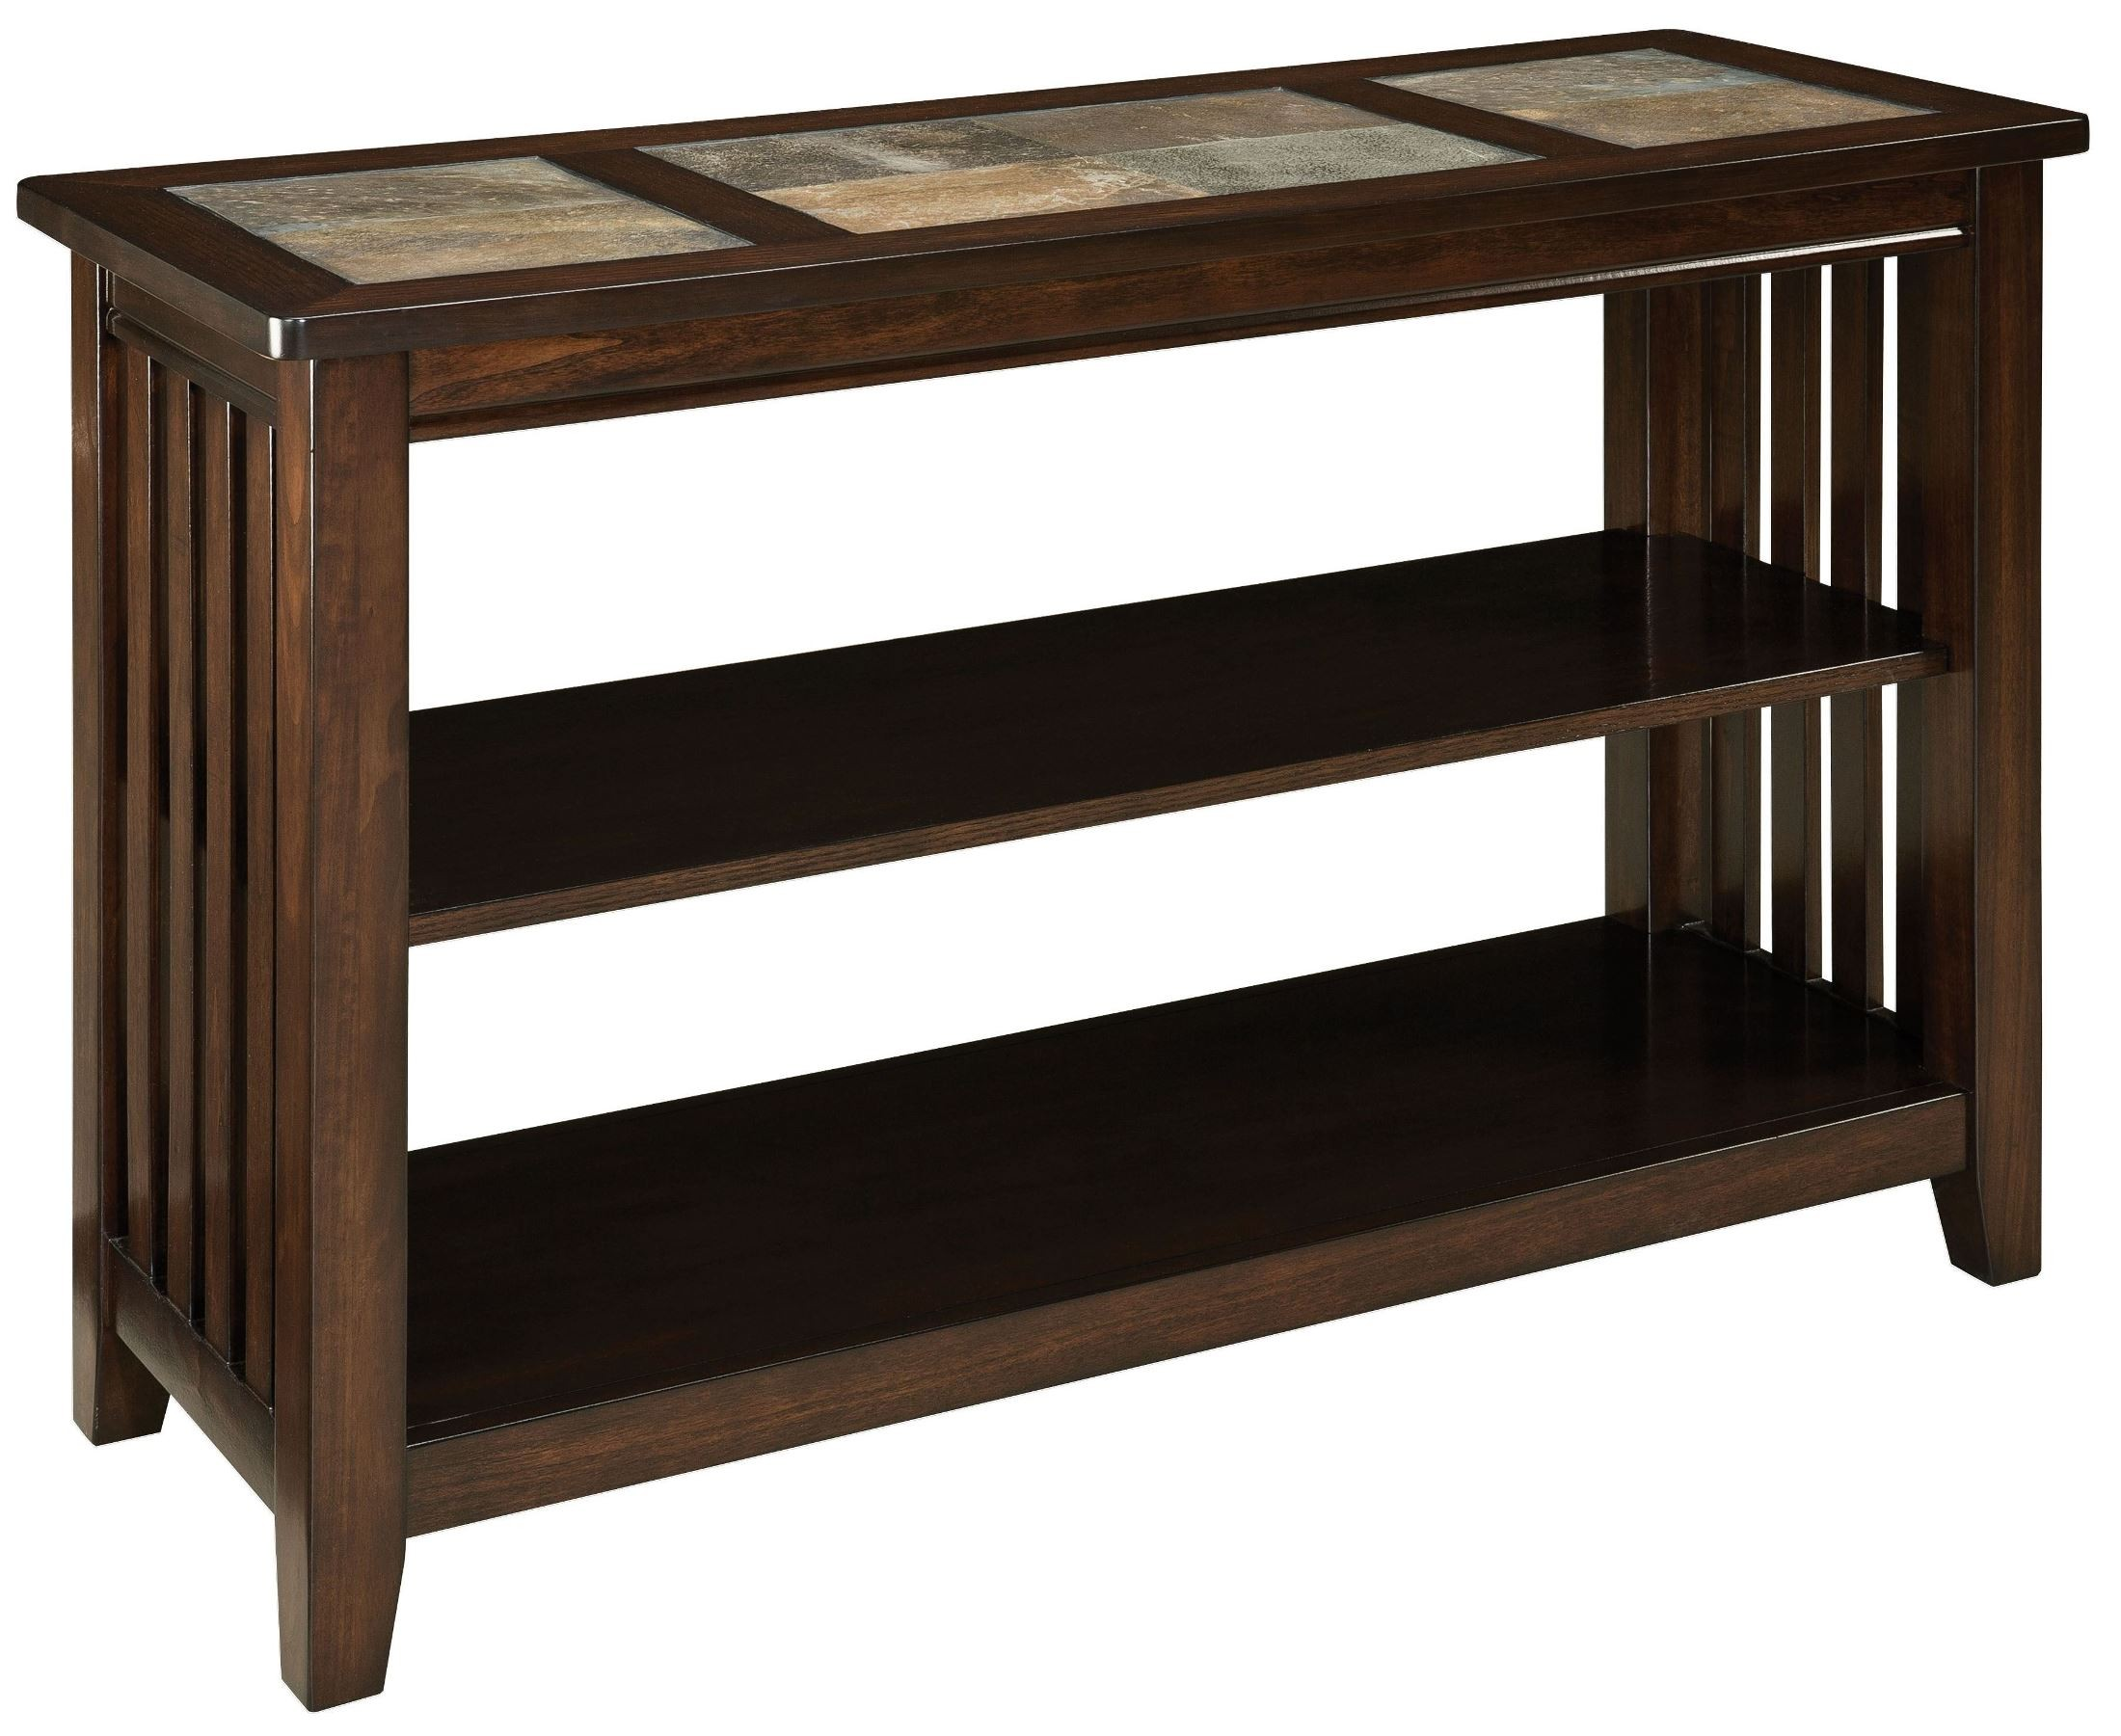 Napa Valley Brown Oak Console Table 20656 Standard Furniture